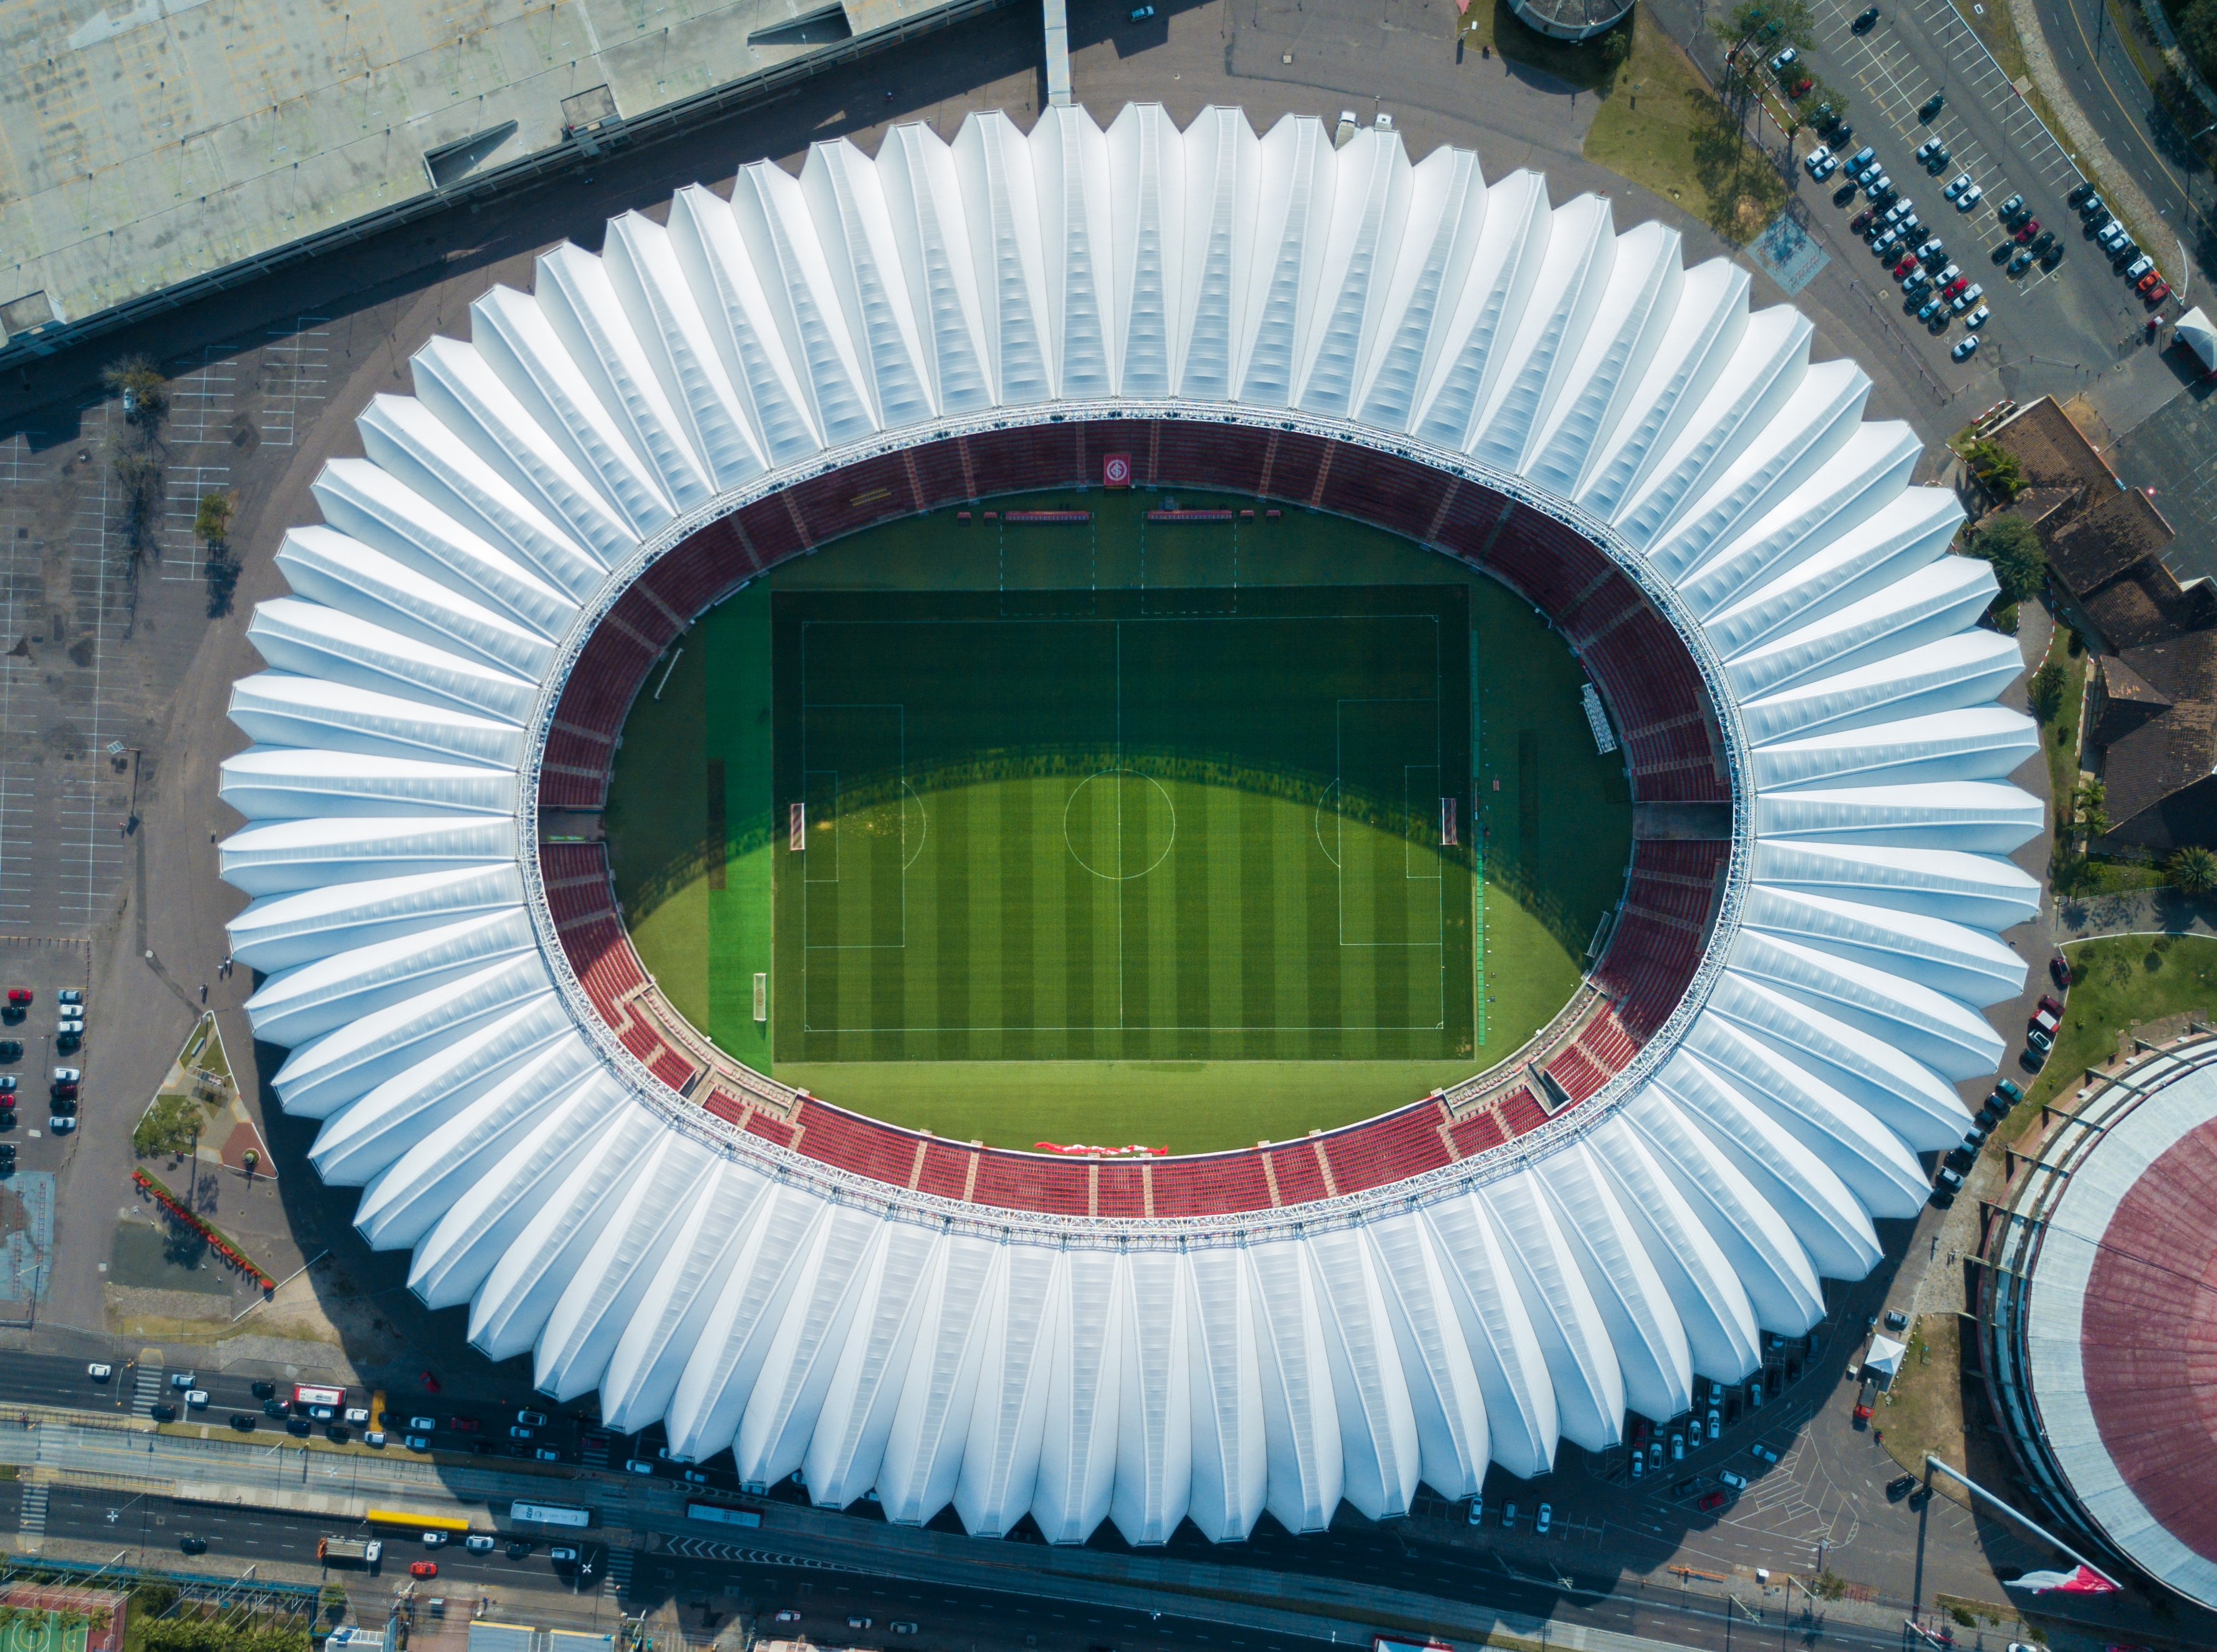 aerial view photography of soccer stadium